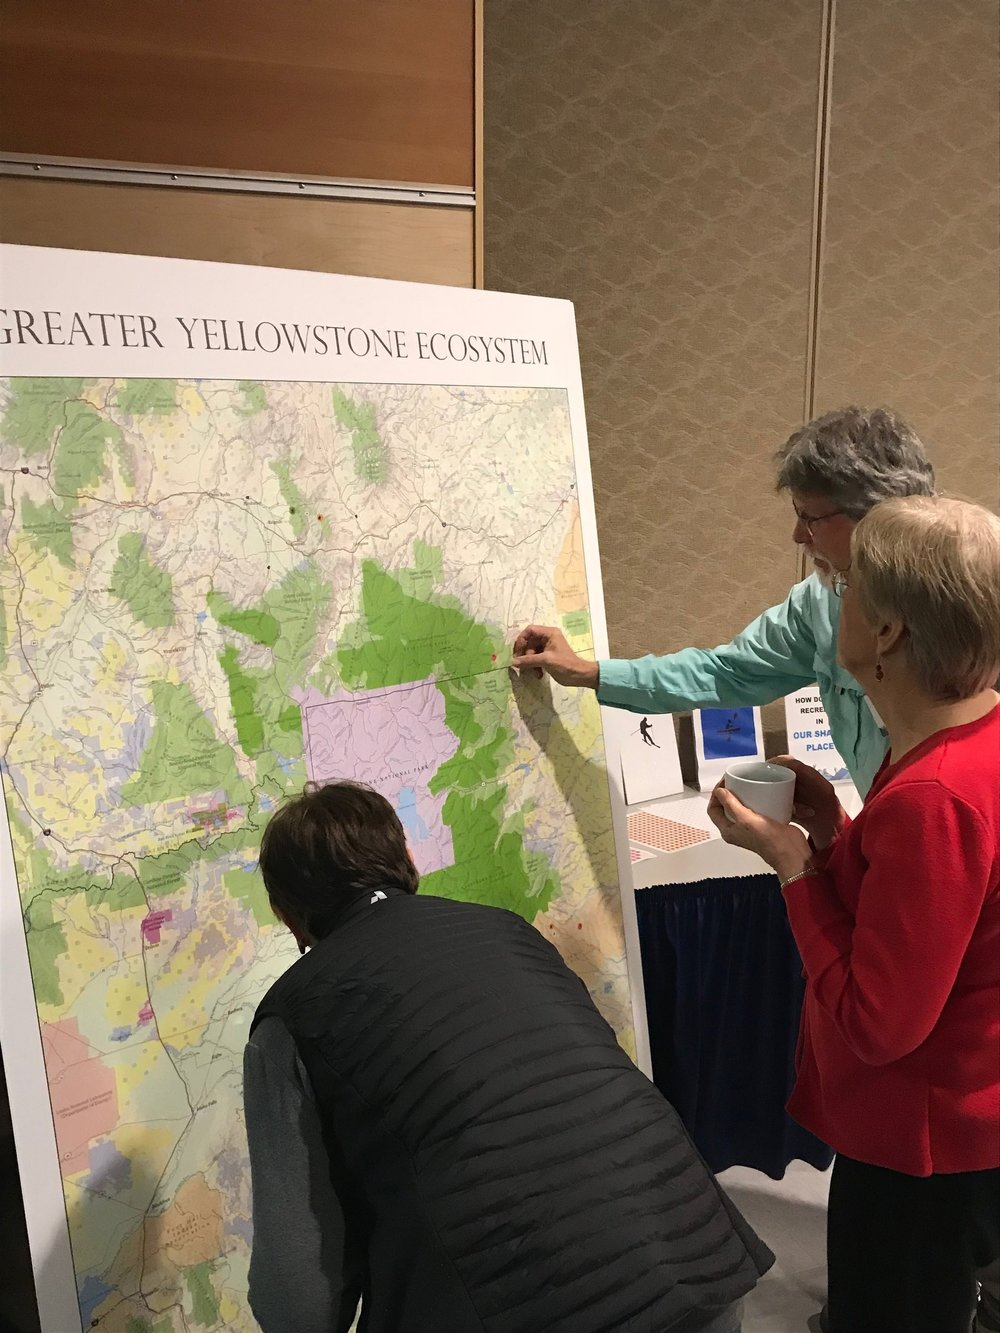 On Monday and Tuesday, symposium attendees at MSU placed activity stickers on a map of the Greater Yellowstone Ecosystem to denote where they enjoy recreating. (Photo: GYC.)